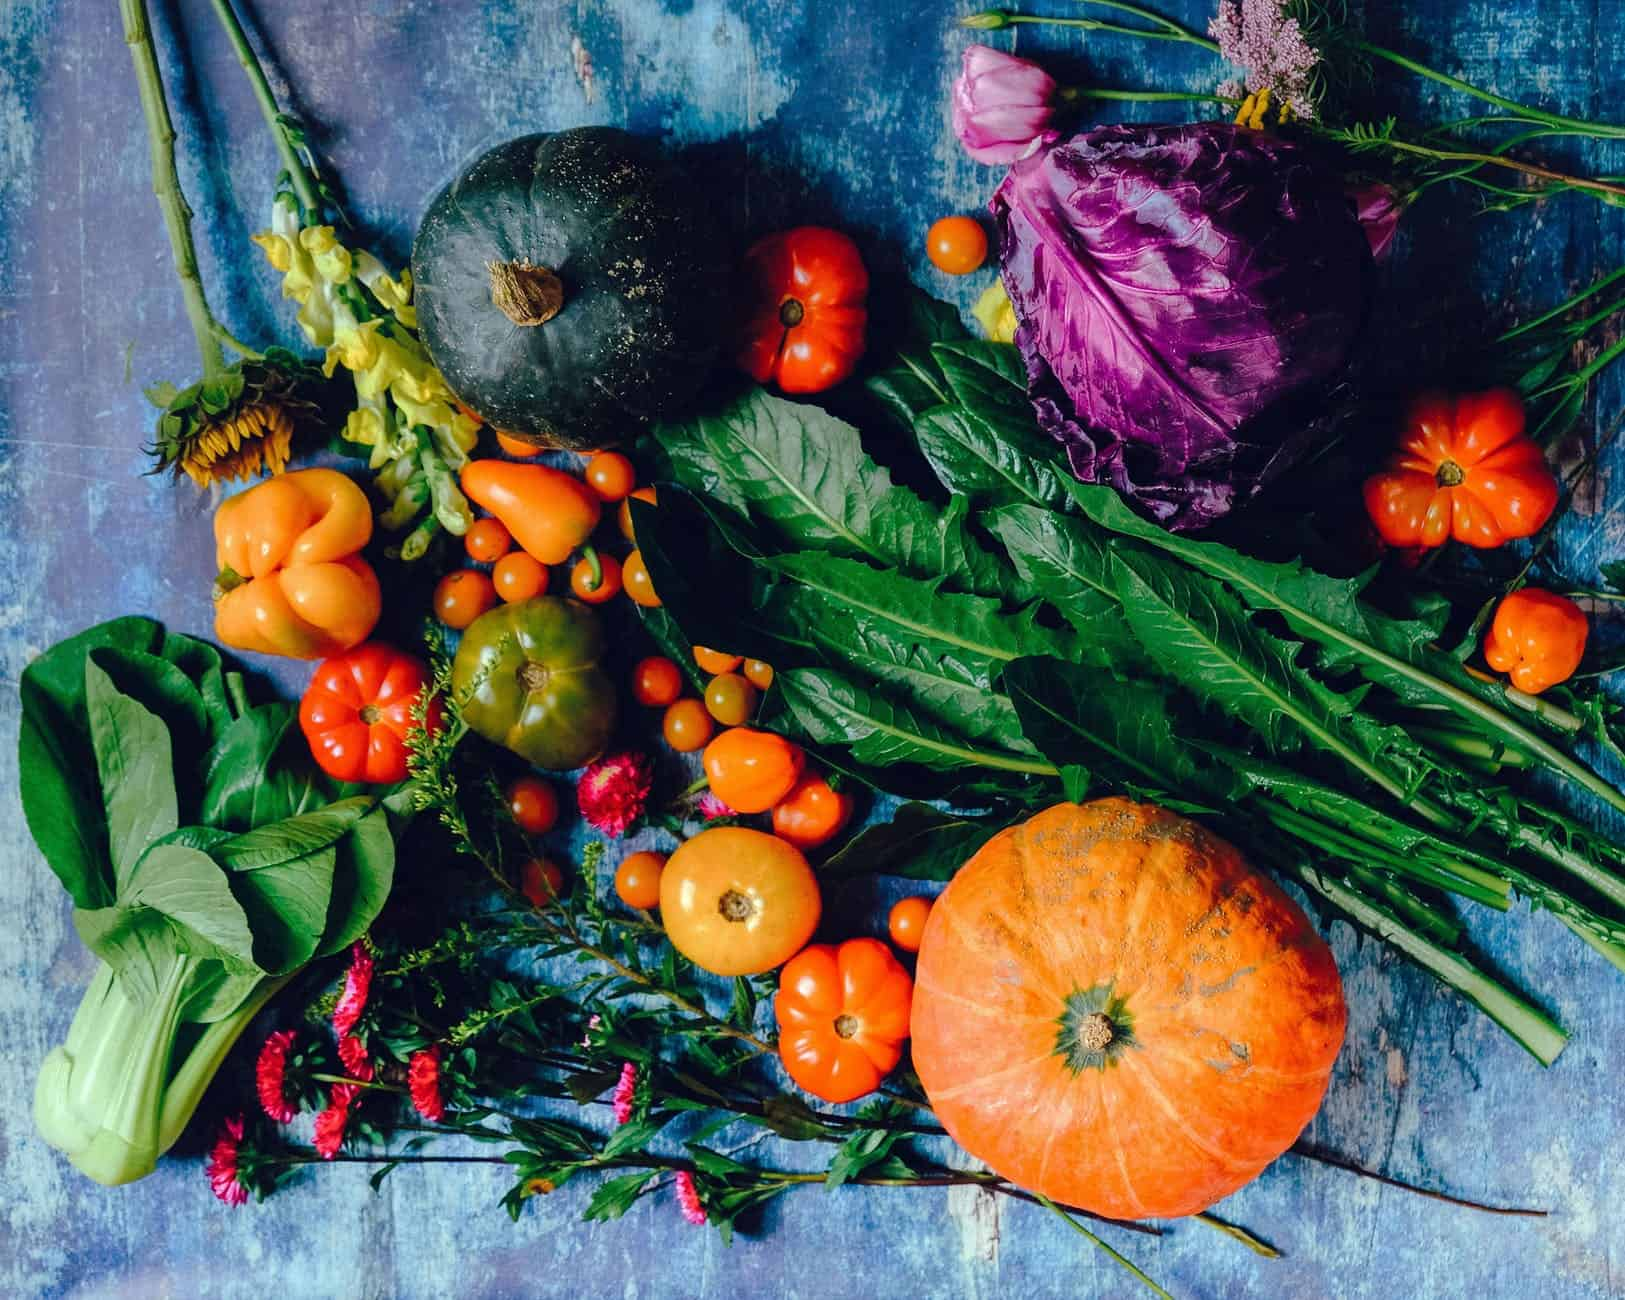 Accessible Tools You Can Have In Preparing Your Vegan Dish